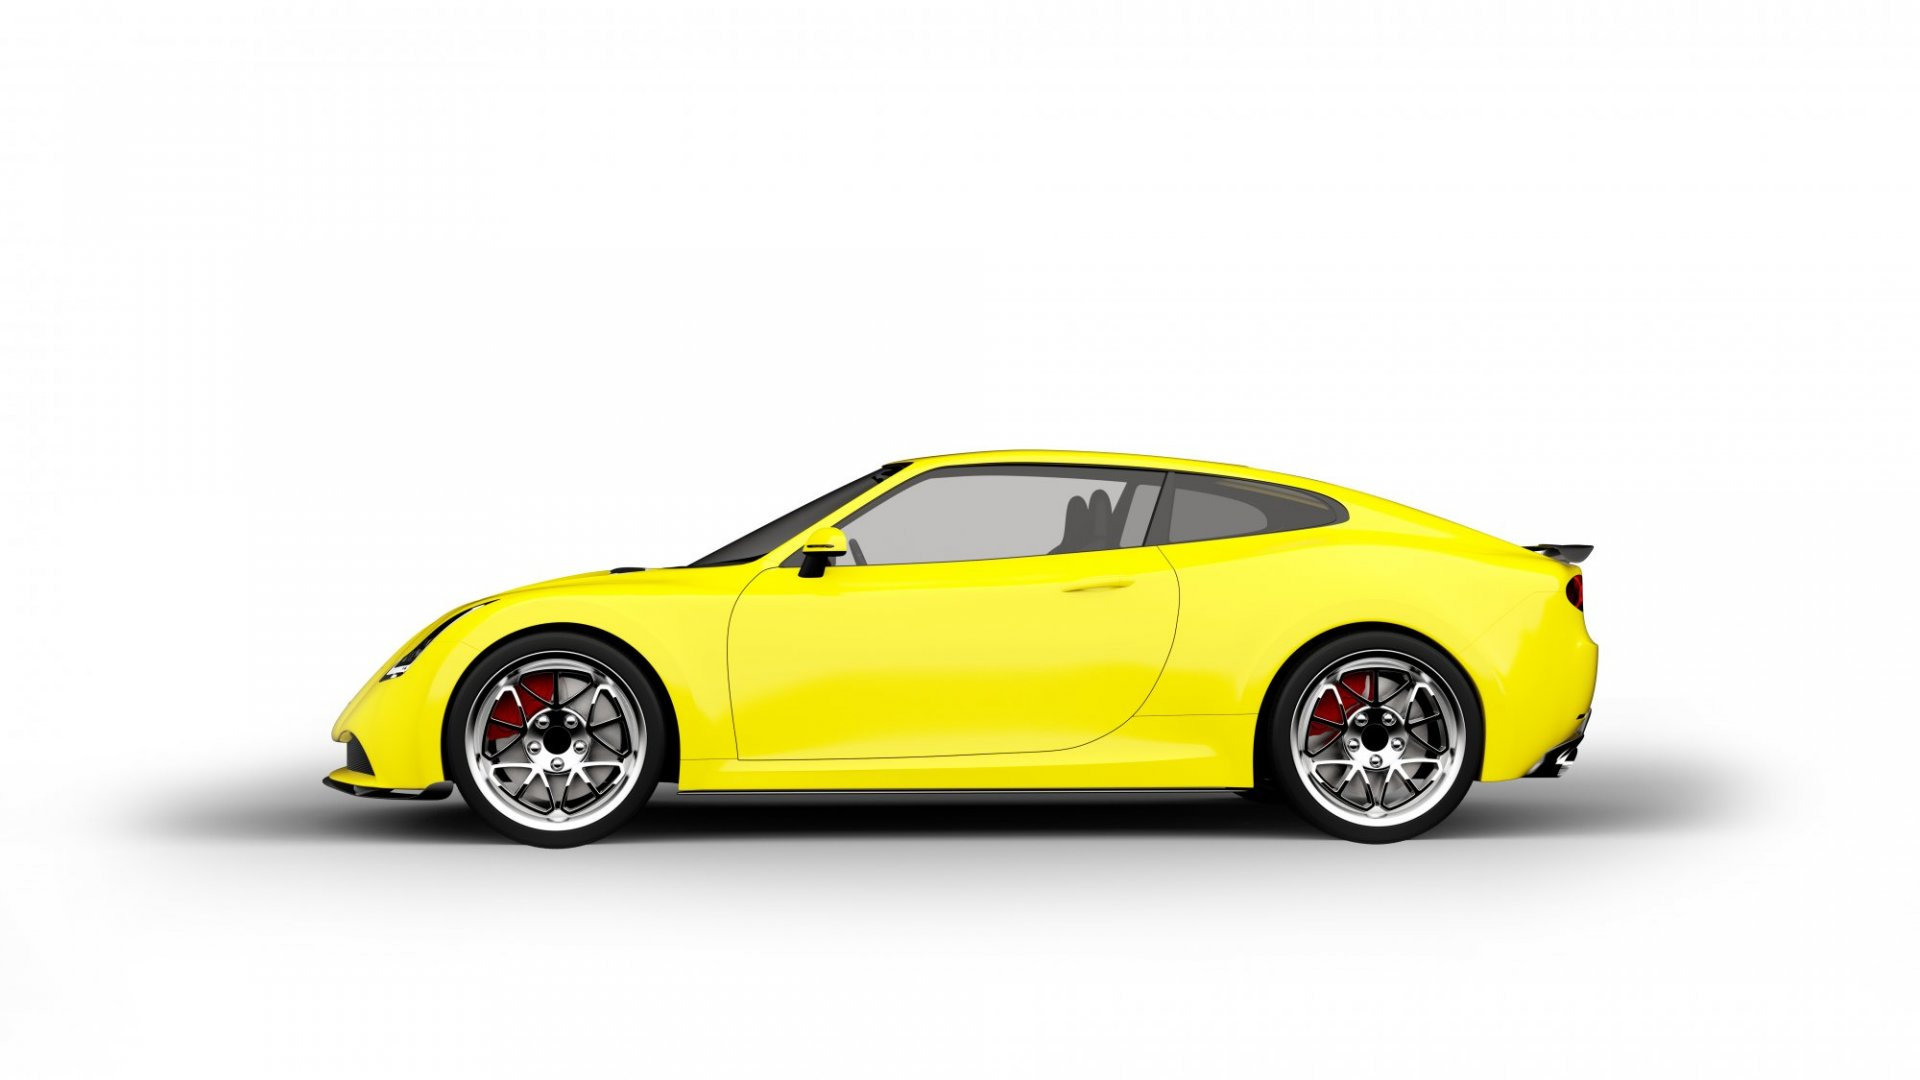 Why You Will See More Yellow Cars Soon